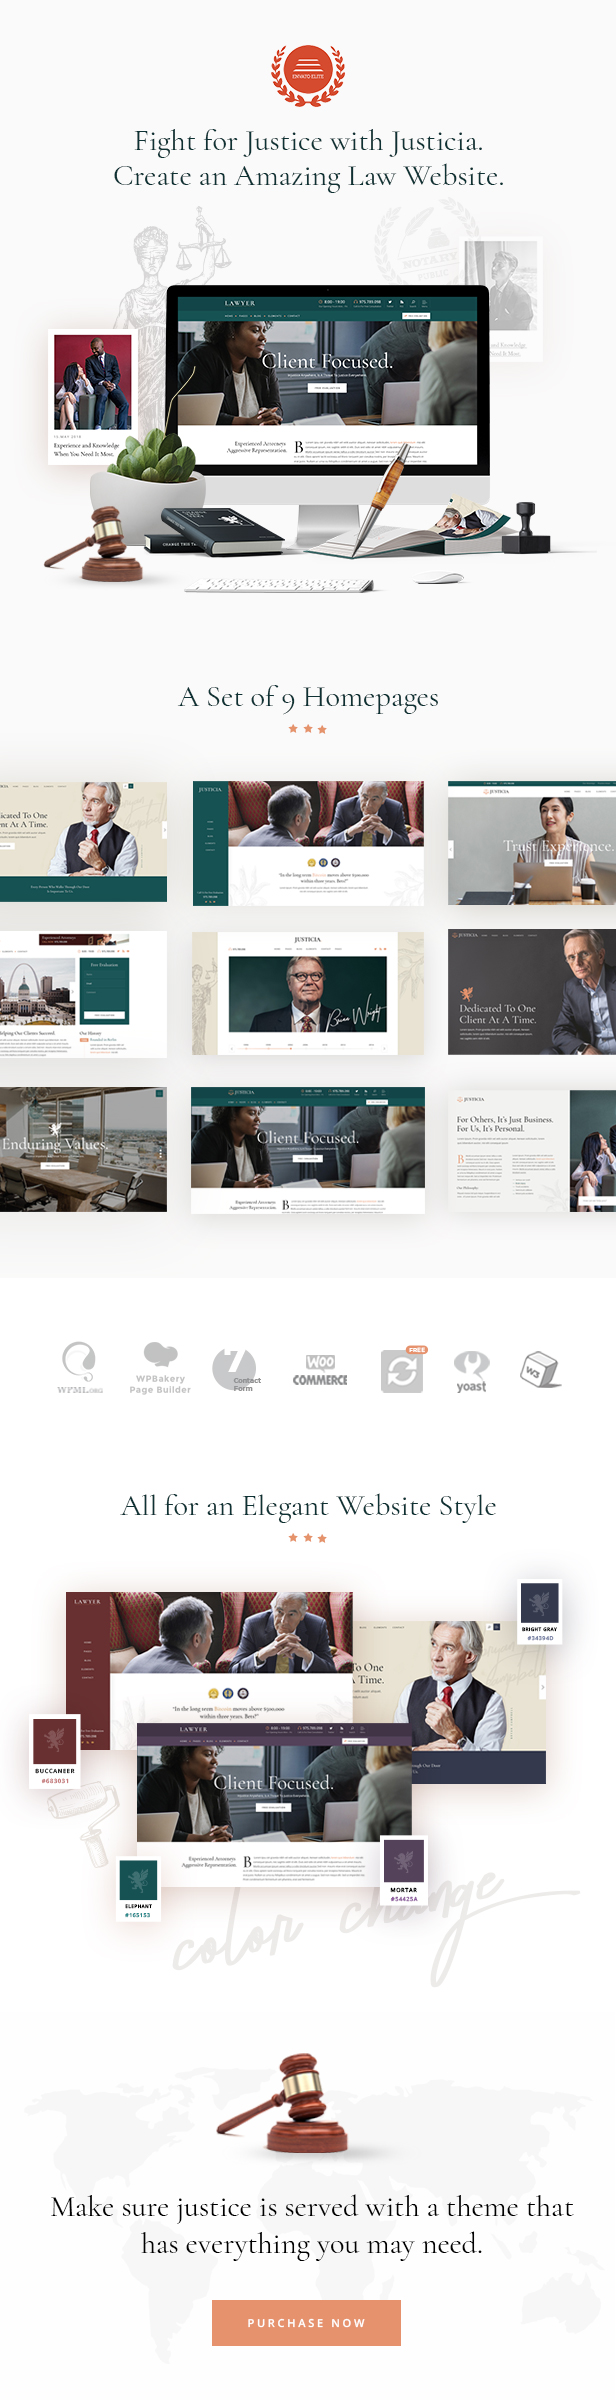 Justicia - Lawyer and Law Firm Theme - 1